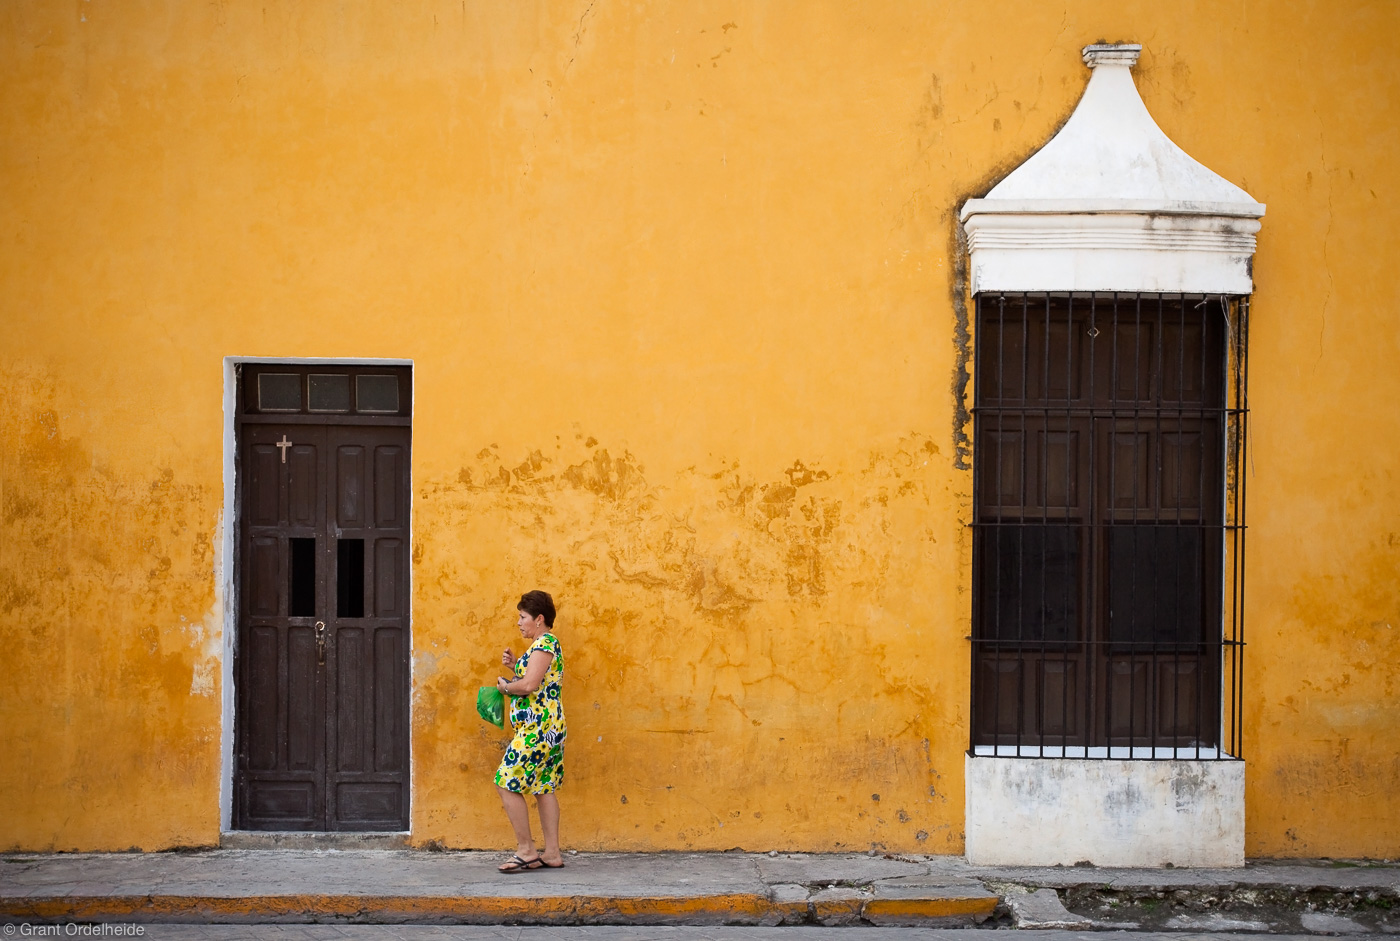 izamal, yucatan, mexico, yellow, woman, city, photo